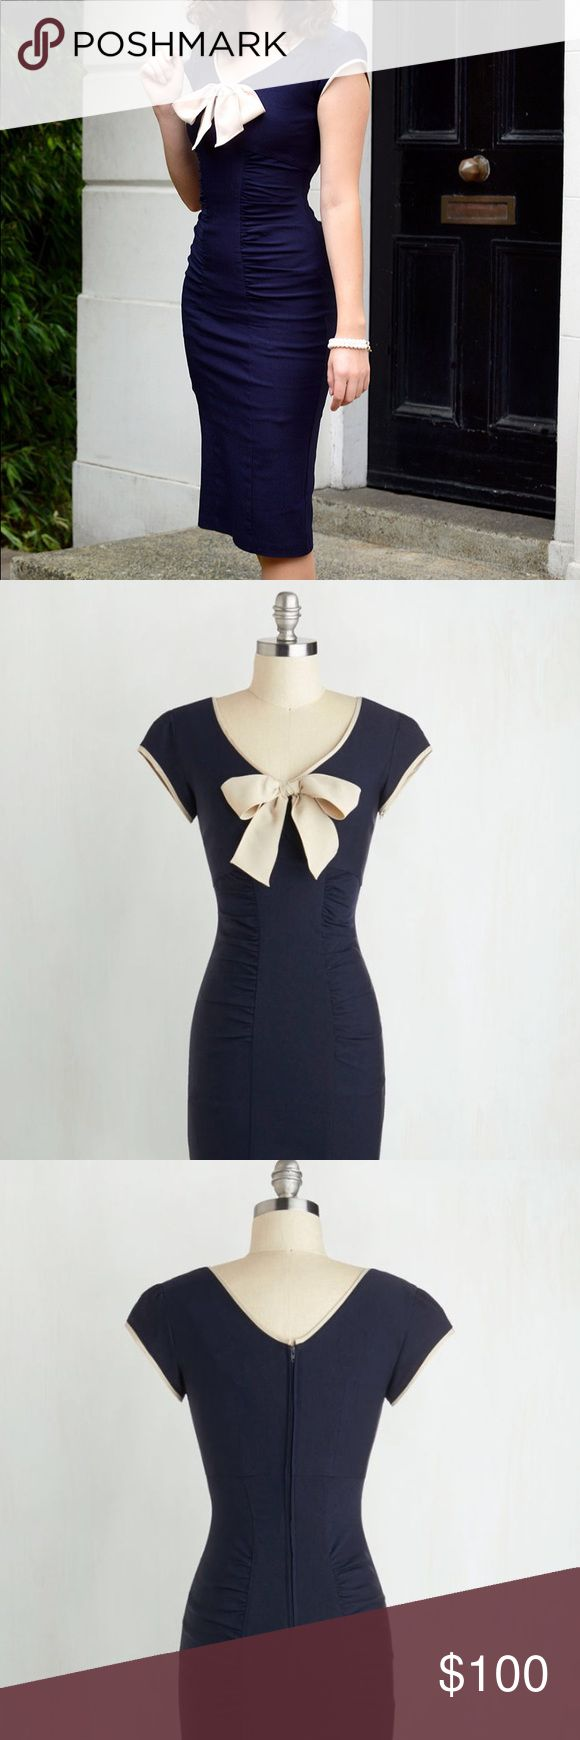 BNWT vintage repro sheath wiggle dress Sold out gorgeous repro wiggle dress inspired by classic silhouettes and constructed from fabulous curve-hugging stretch fabric. So comfortable! Tags still on, no defects or issues. By Stop Staring, purchased from ModCloth. Stop Staring Dresses